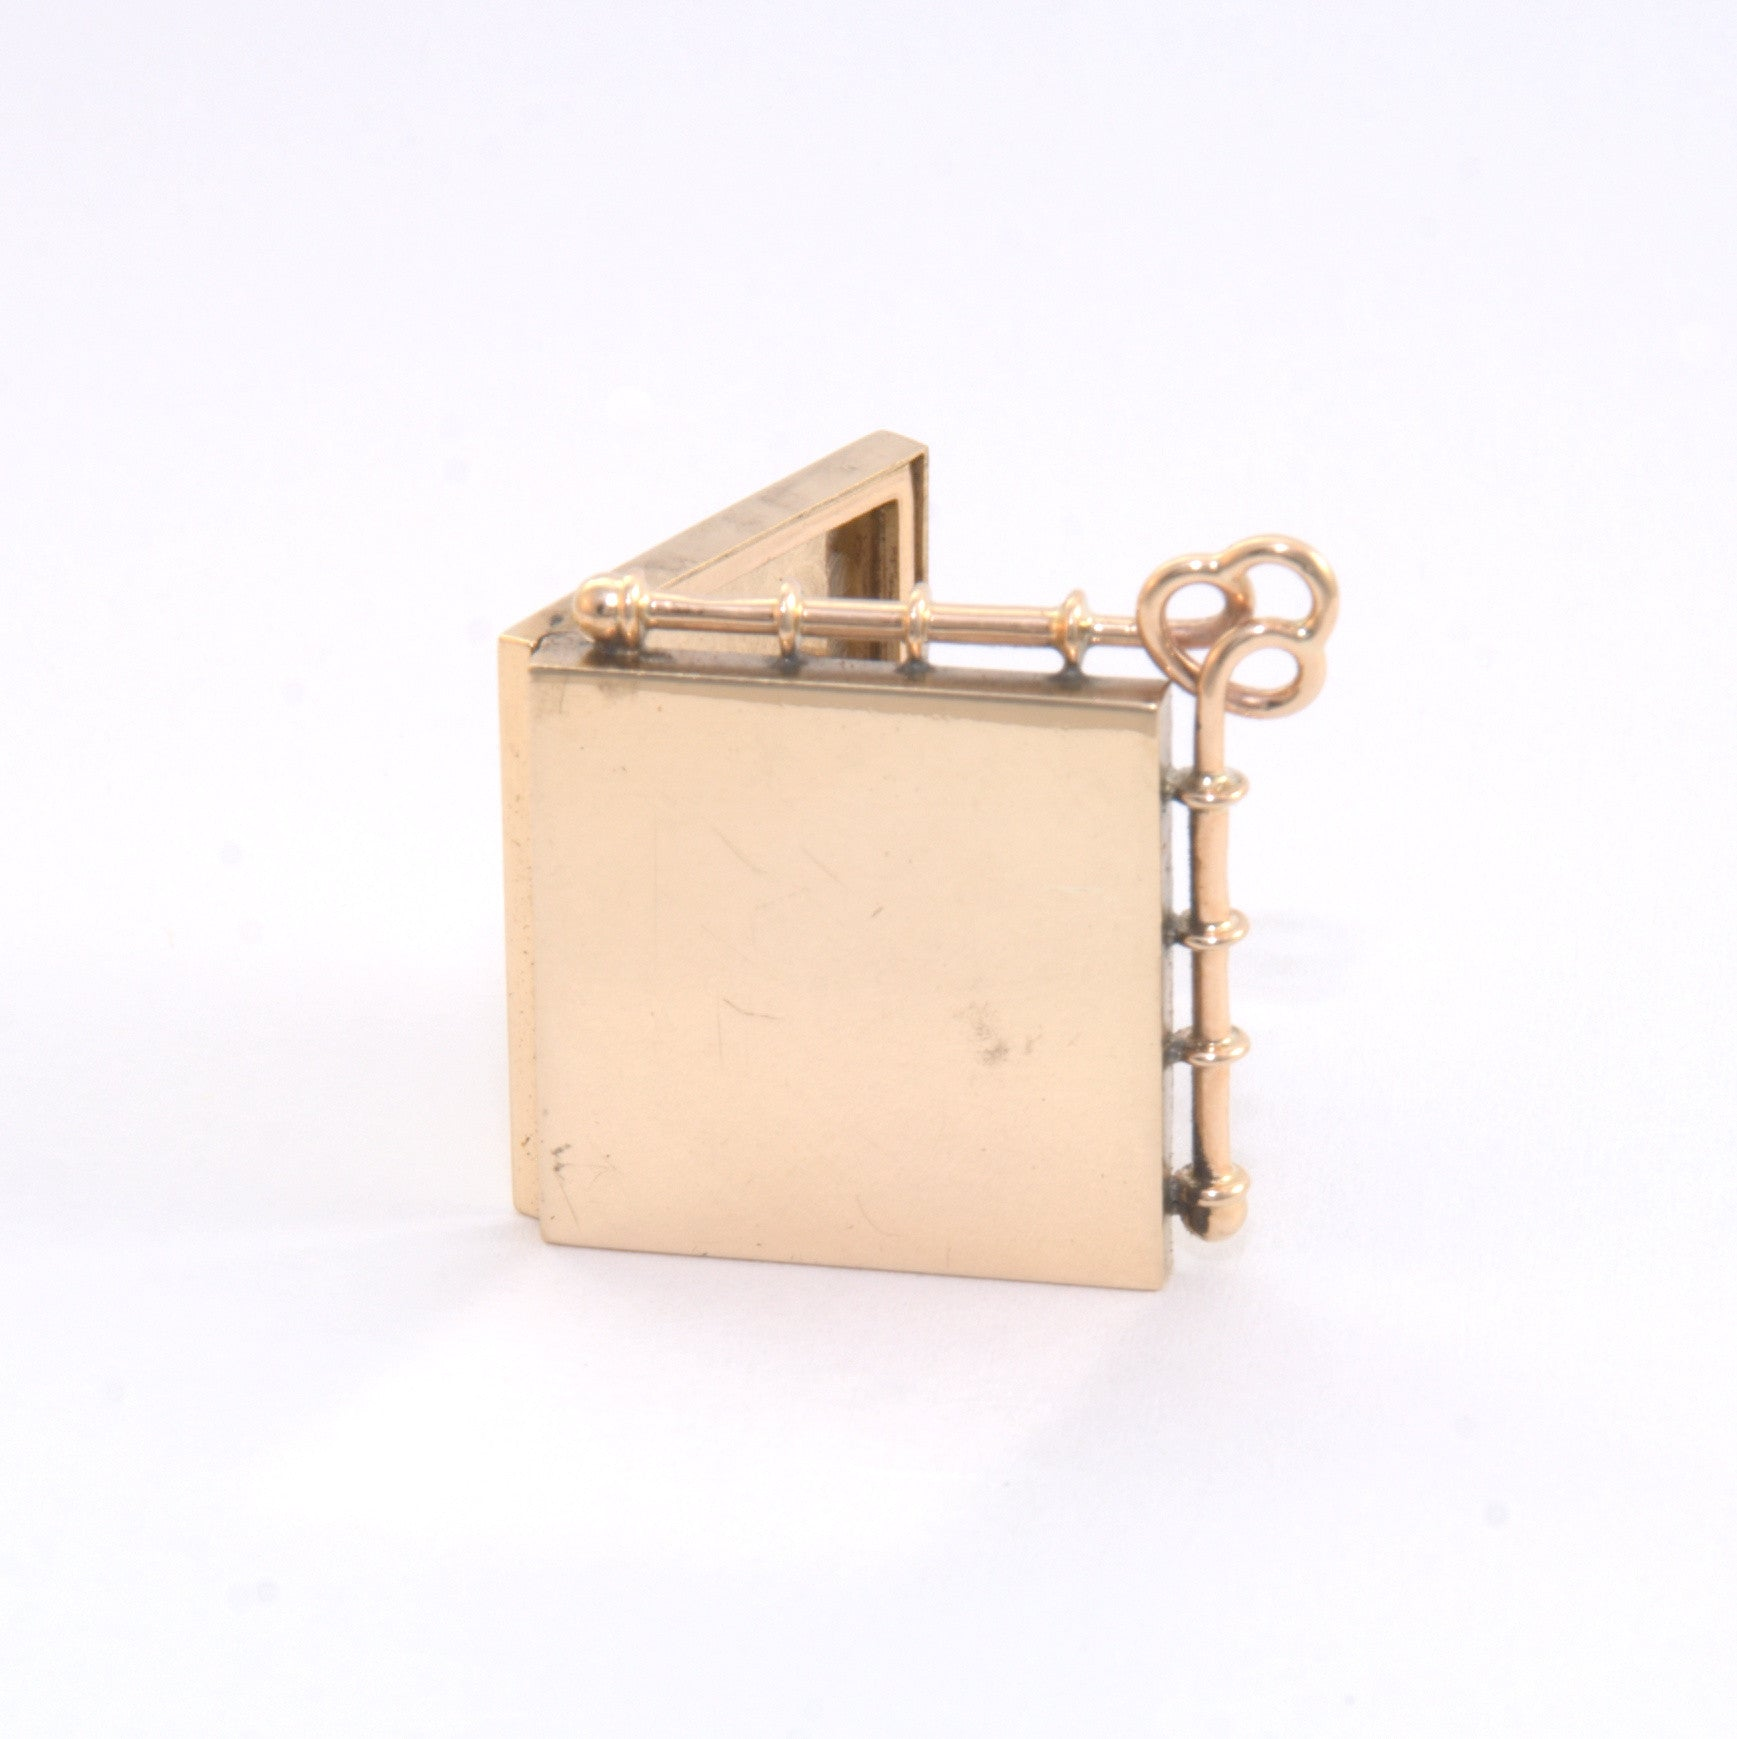 legato locket lockets products perfume flower sandalwood back square